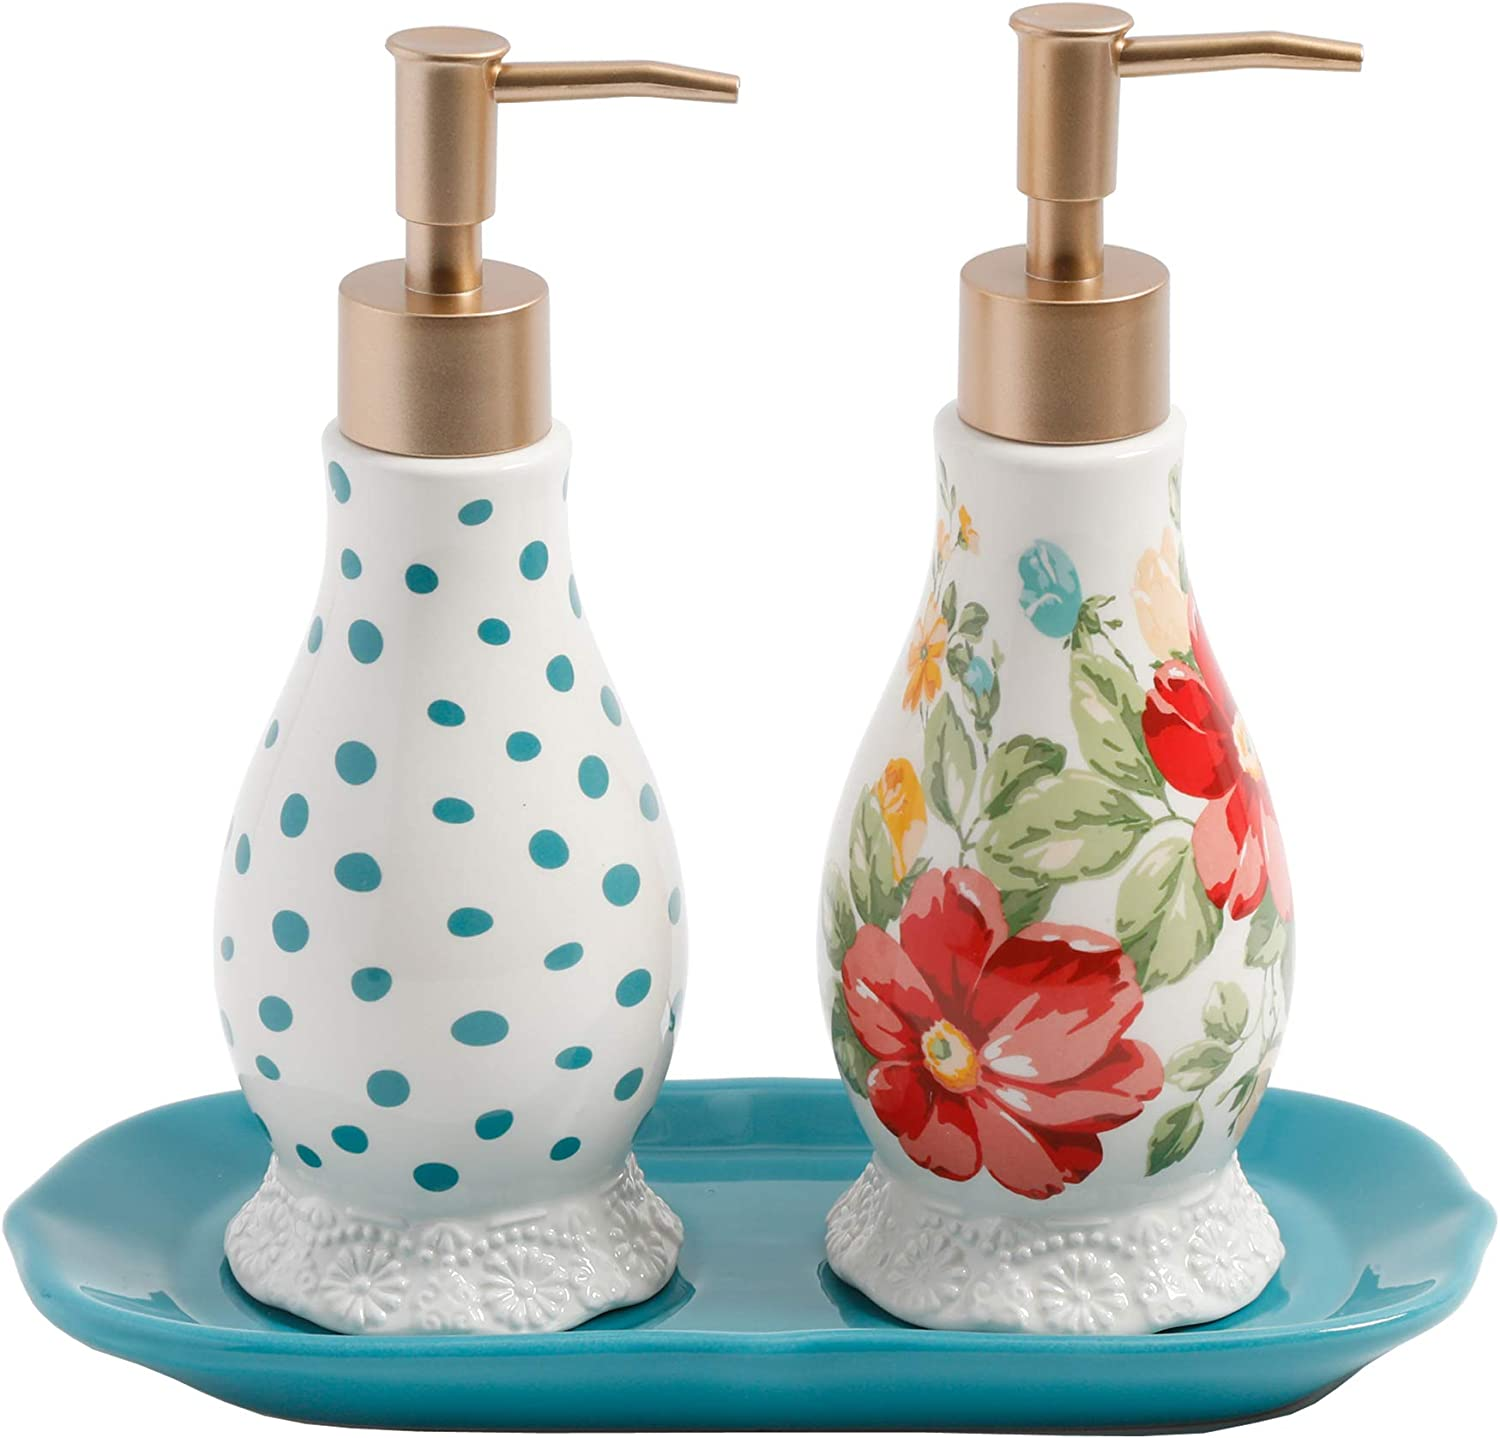 The Pioneer Woman Vintage Floral Soap and Lotion Set